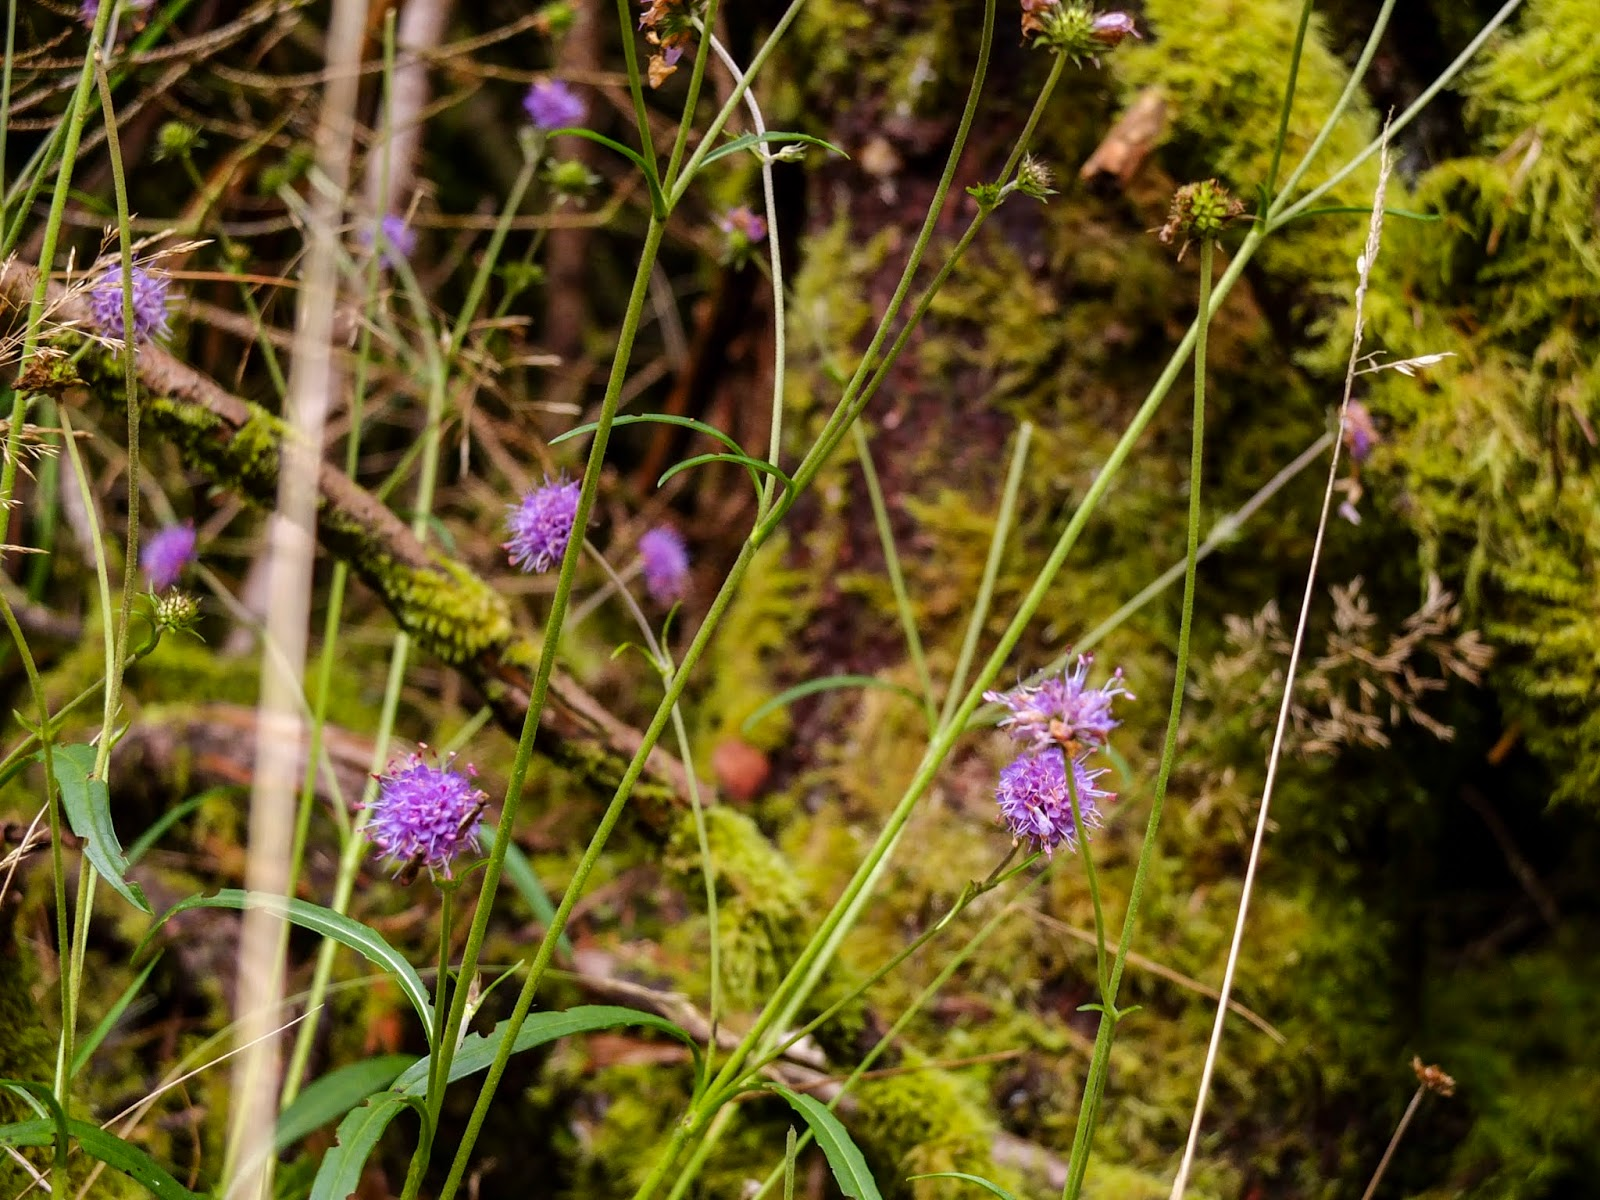 Little purple flowers growing with some grasses and moss.